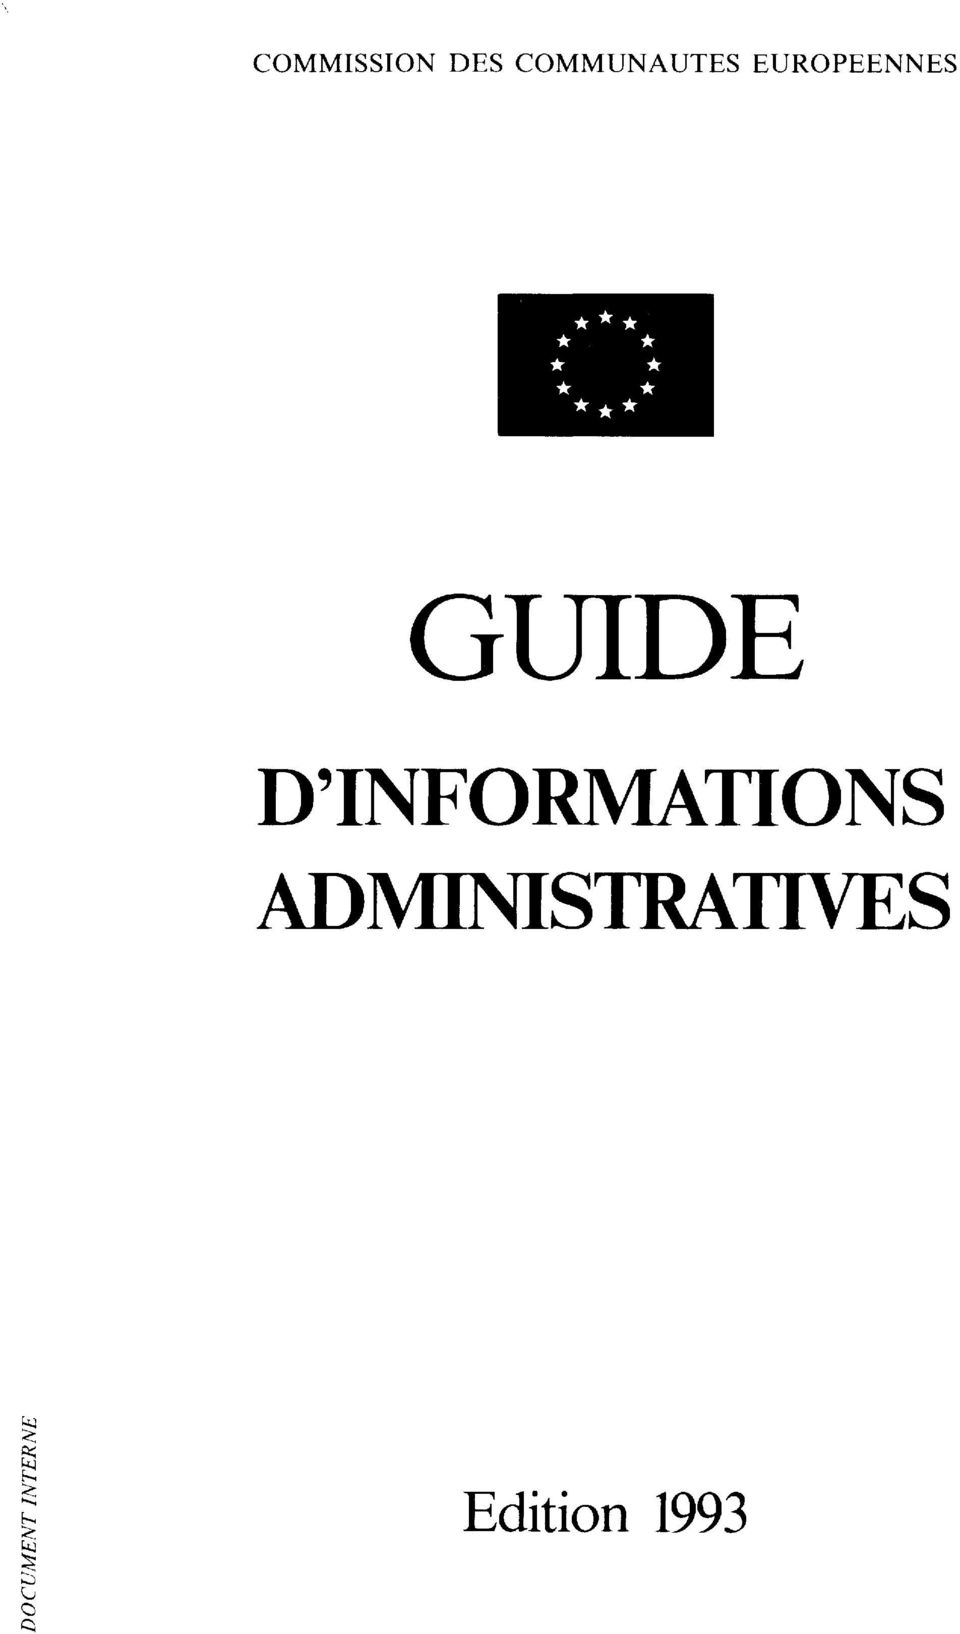 GUIDE D'INFORMATIONS